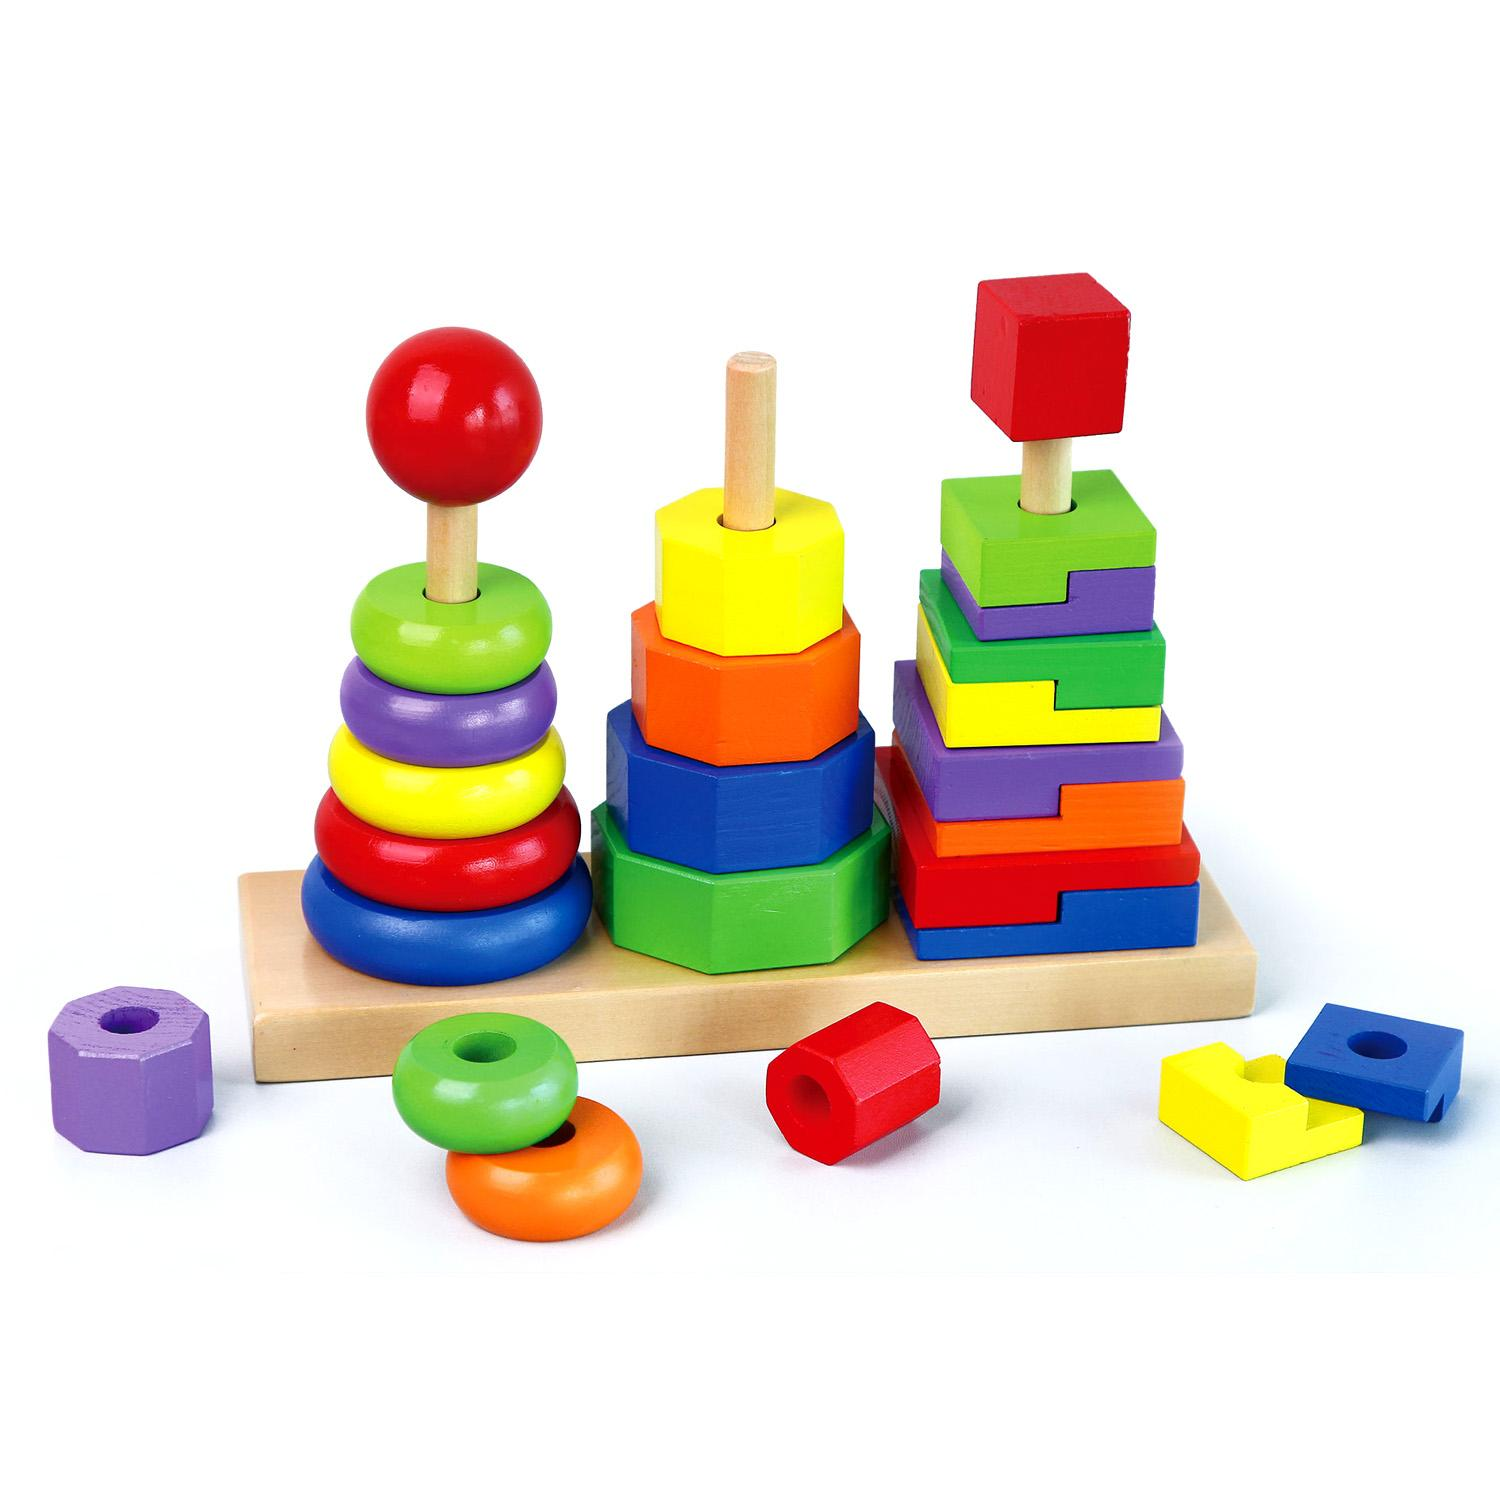 Wooden Geometric Stacker   Wooden Toys - Net Price Direct